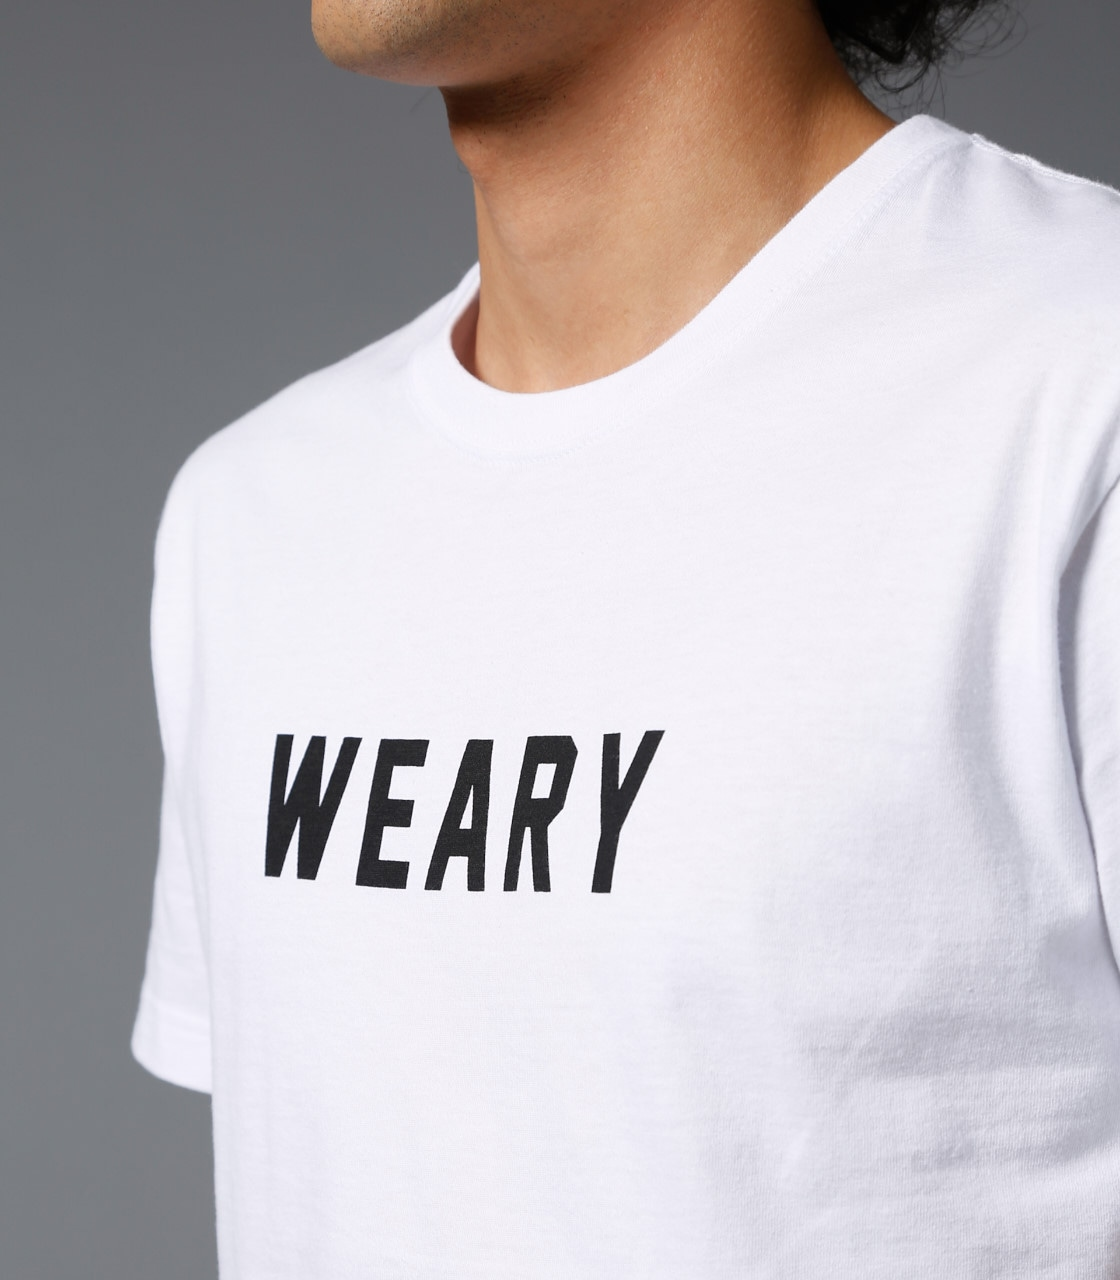 【AZUL BY MOUSSY】WEARY 半袖T 詳細画像 WHT 8